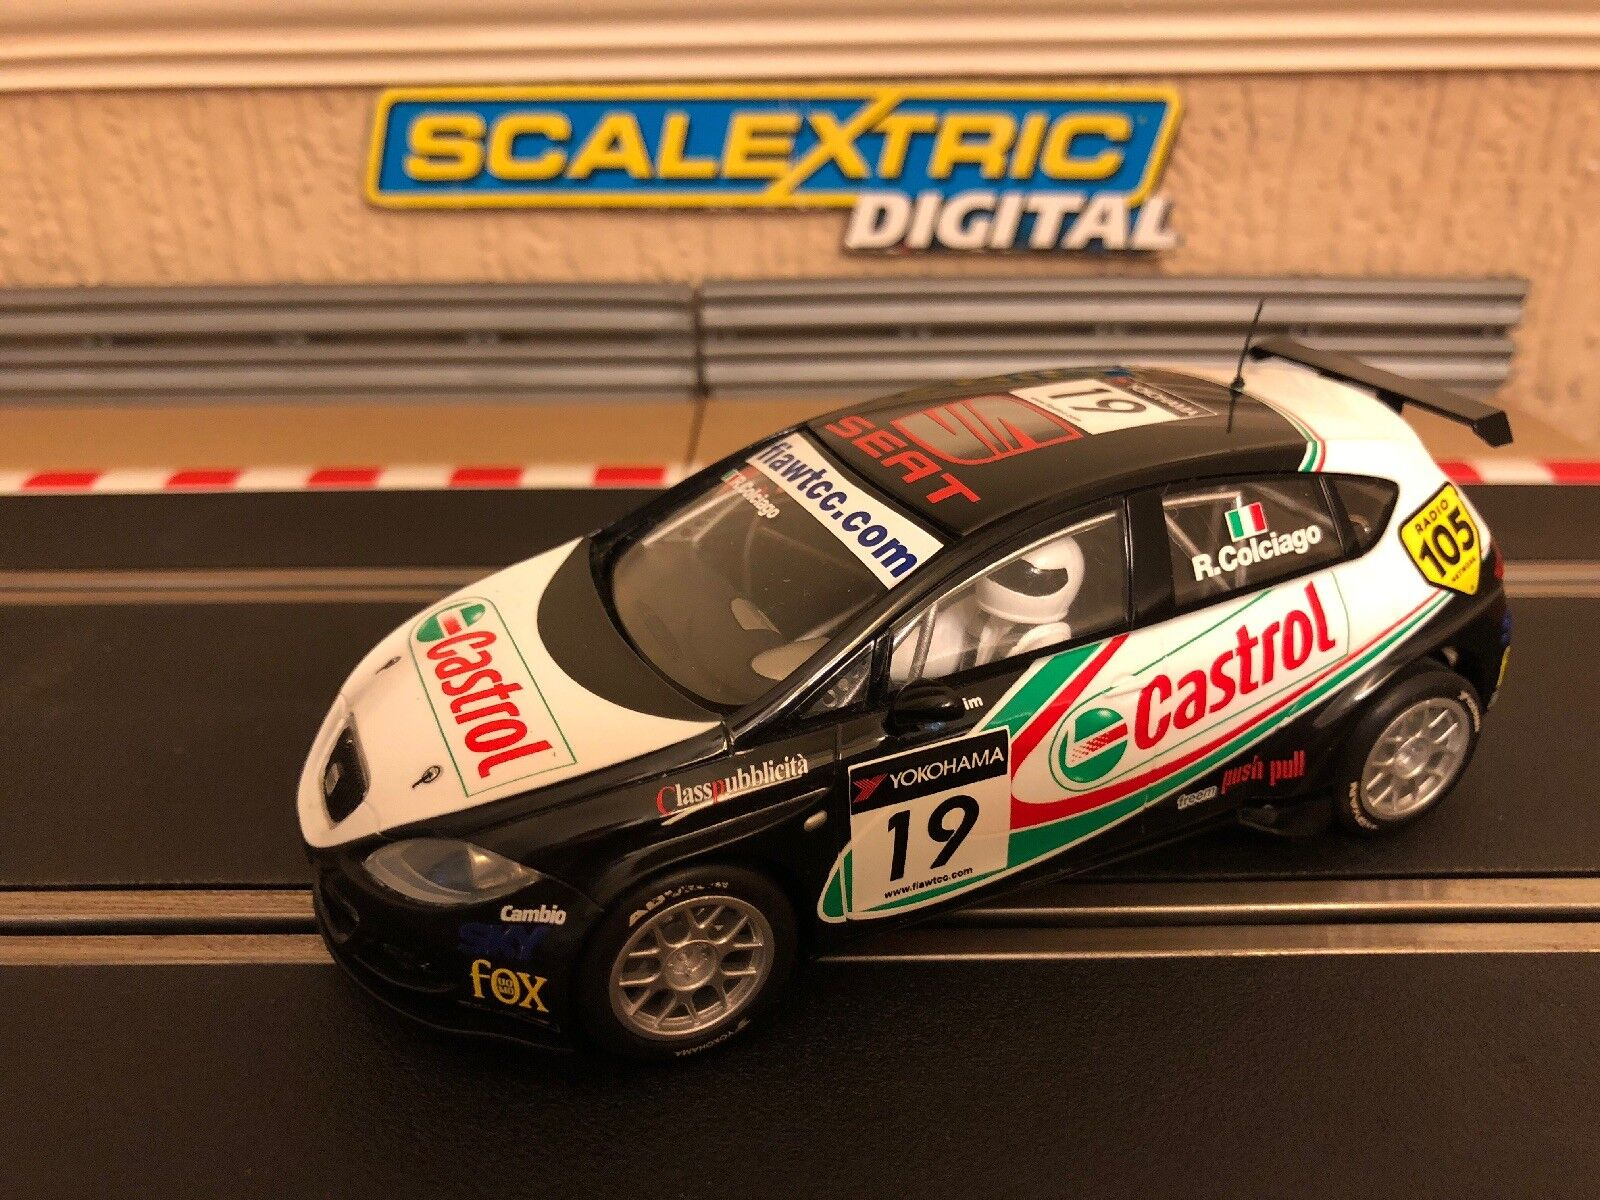 Scalextric Digital Seat Leon WTCC No19 R.Colciago C2912 Mint Condition